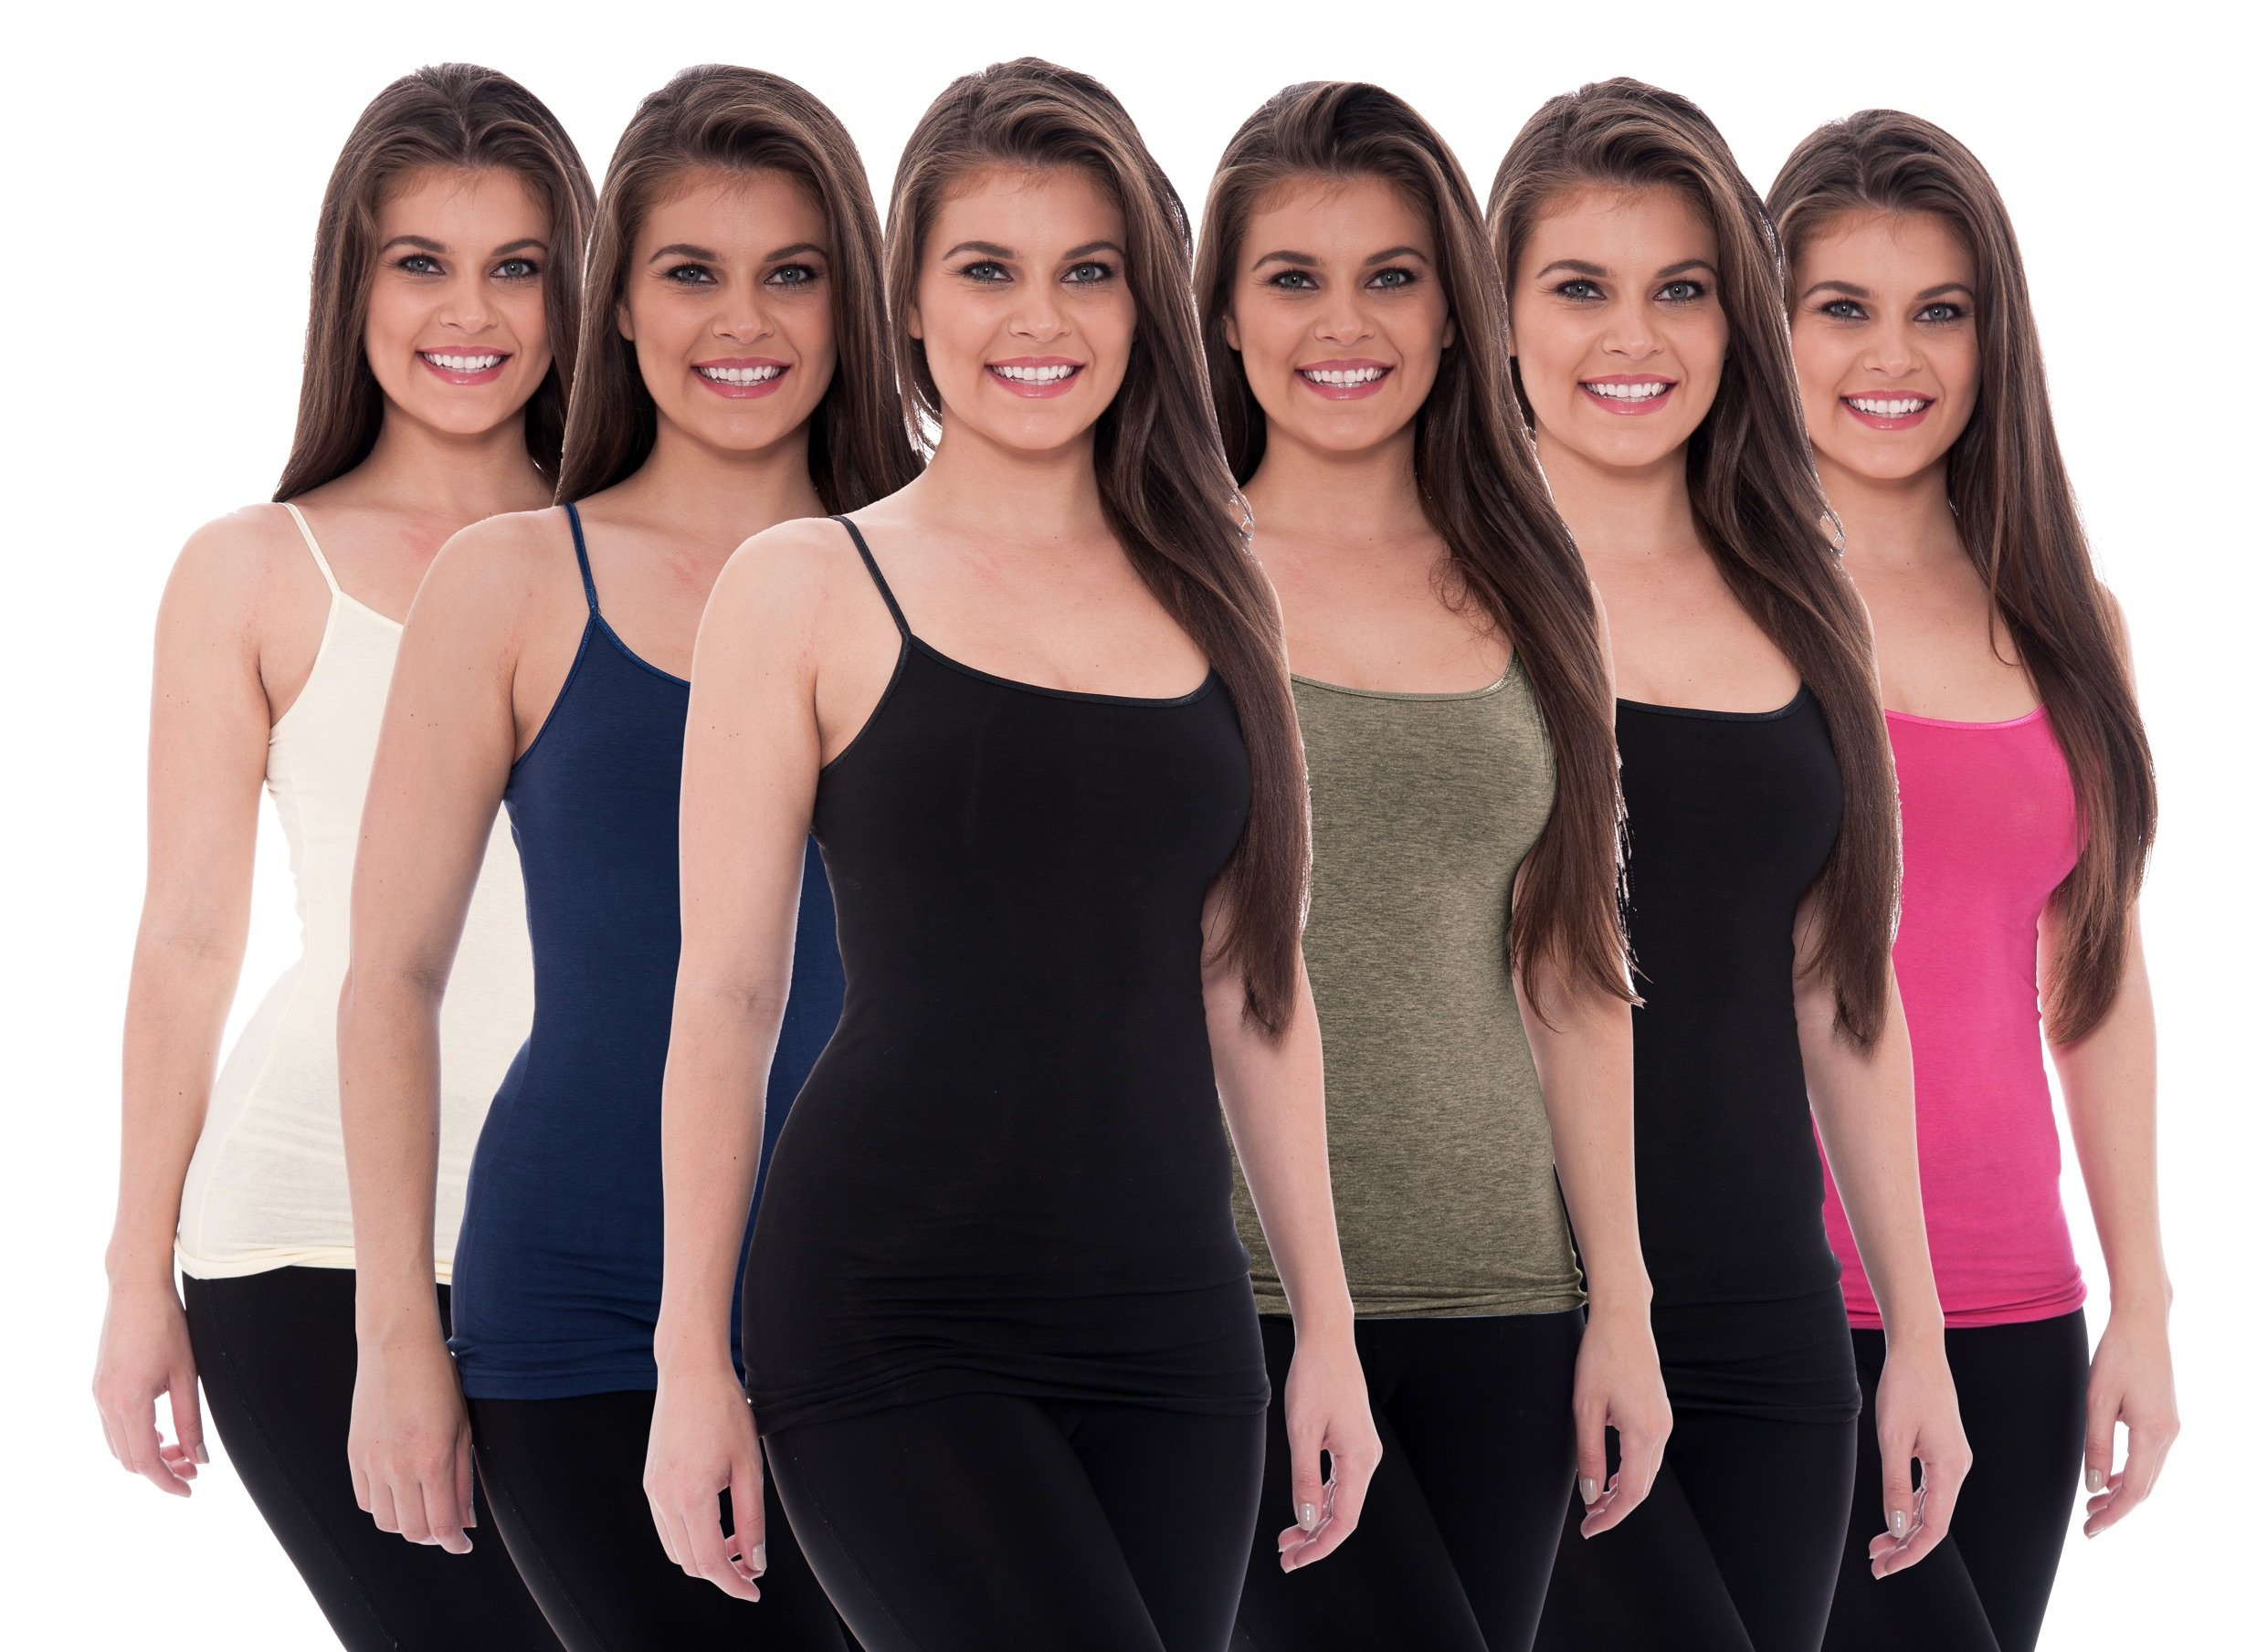 Unique Styles 6 Pack Women's Tanks Tops Adjustable Spaghetti Strap Cotton Cami (X-Large, 2 Black, Pink, White, Navy, Grey) by Unique Styles